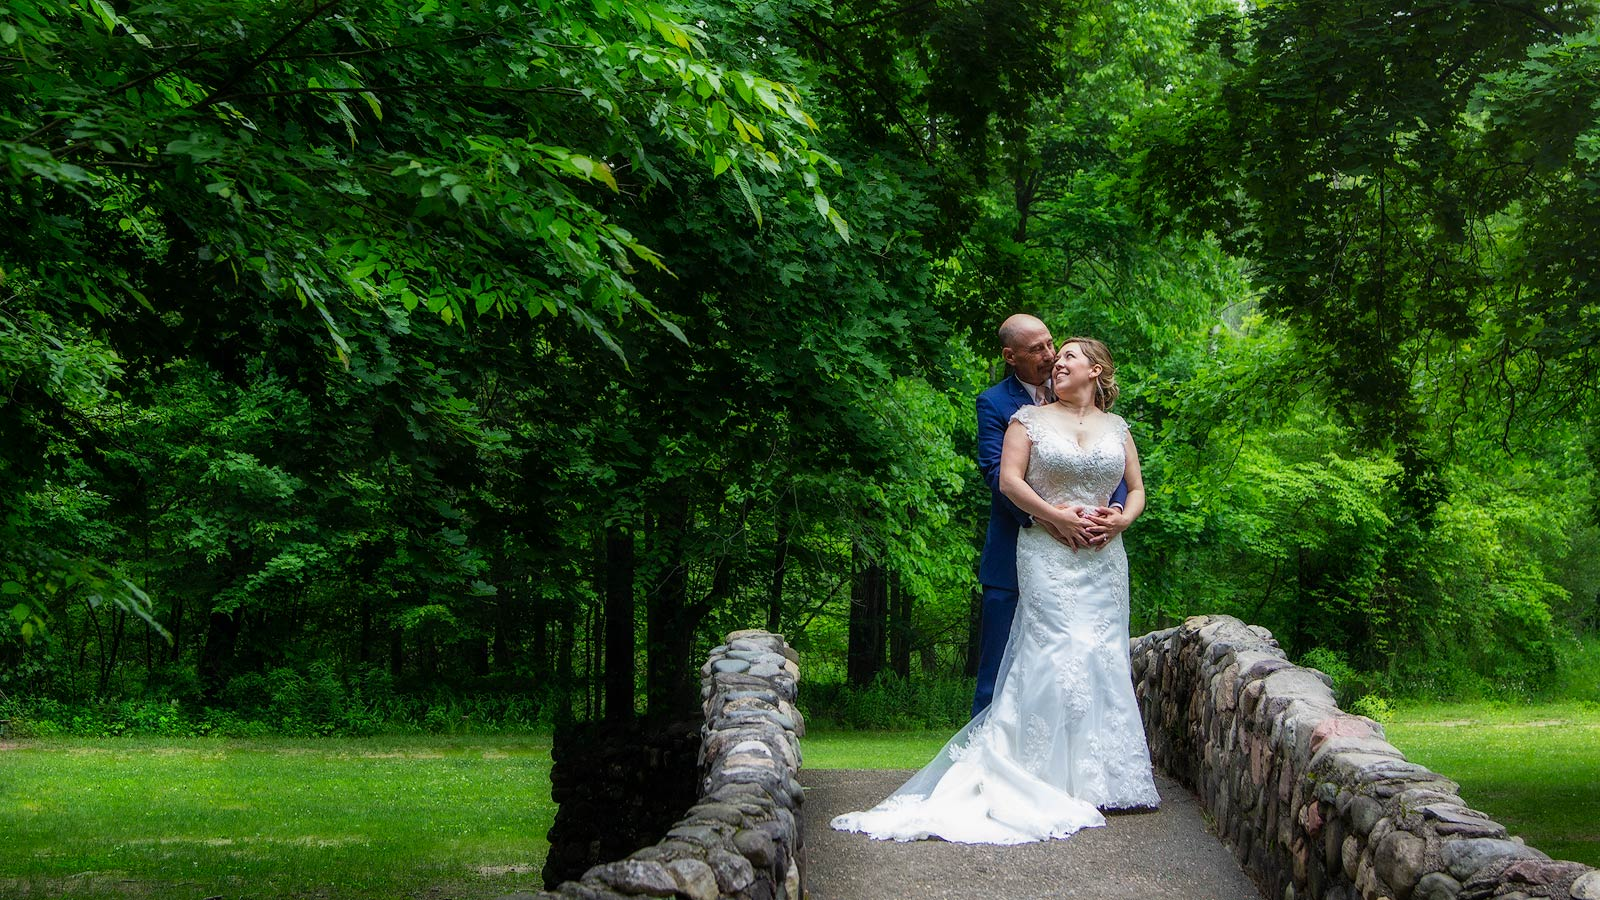 Wedding Photo Couple on Stone Bridge in Park